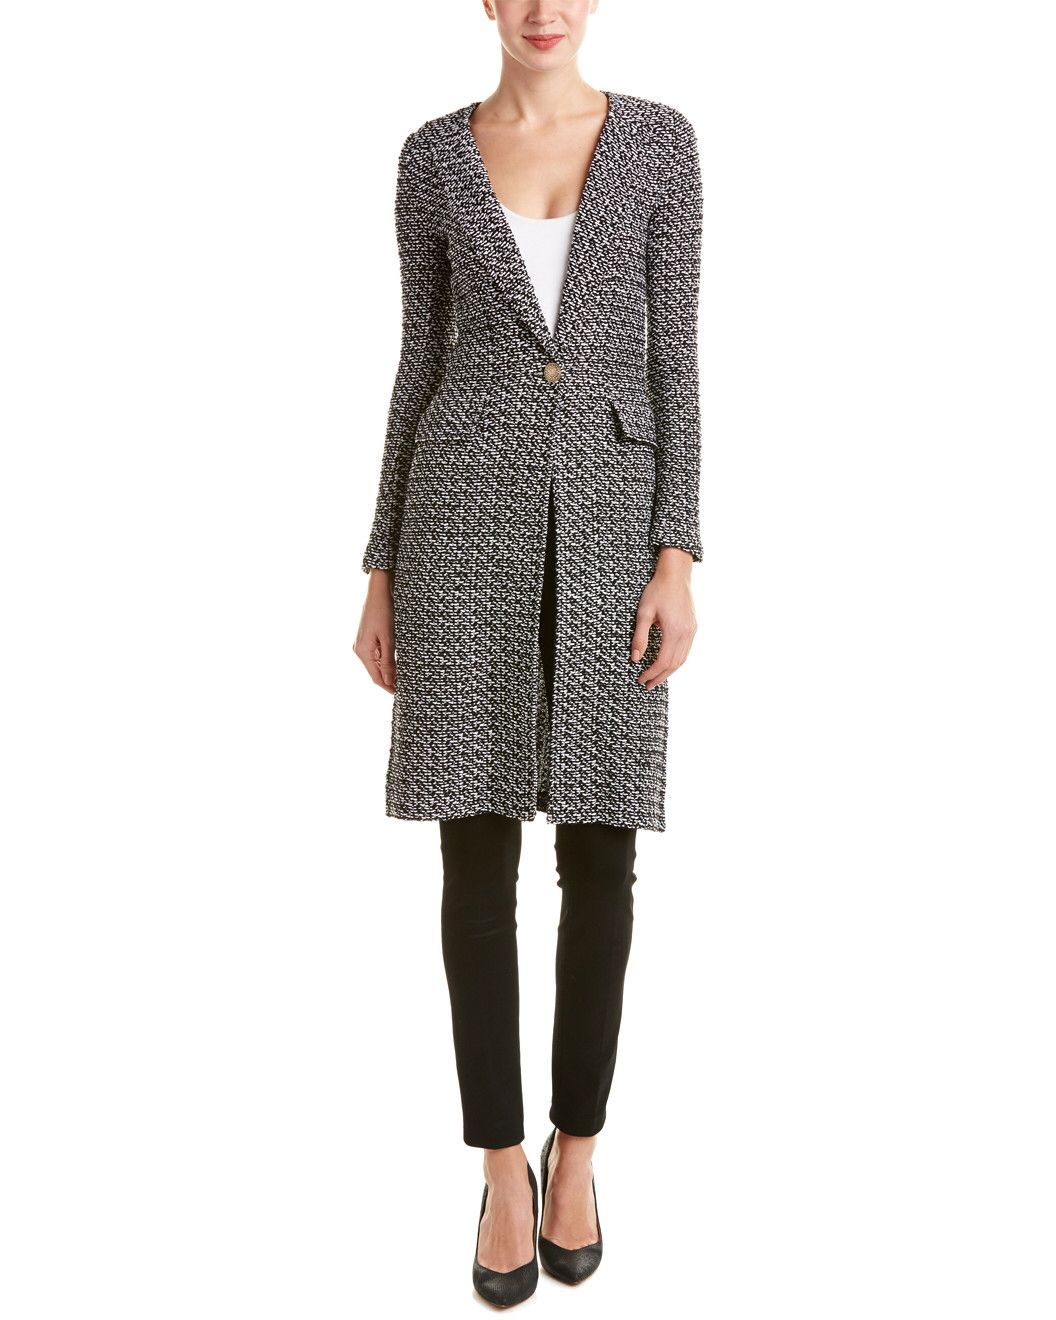 You need to see this St. John Wool-Blend Jacket on Rue La La.  Get in and shop (quickly!): http://www.ruelala.com/boutique/product/99097/28302668?inv=alampert04&aid=6191